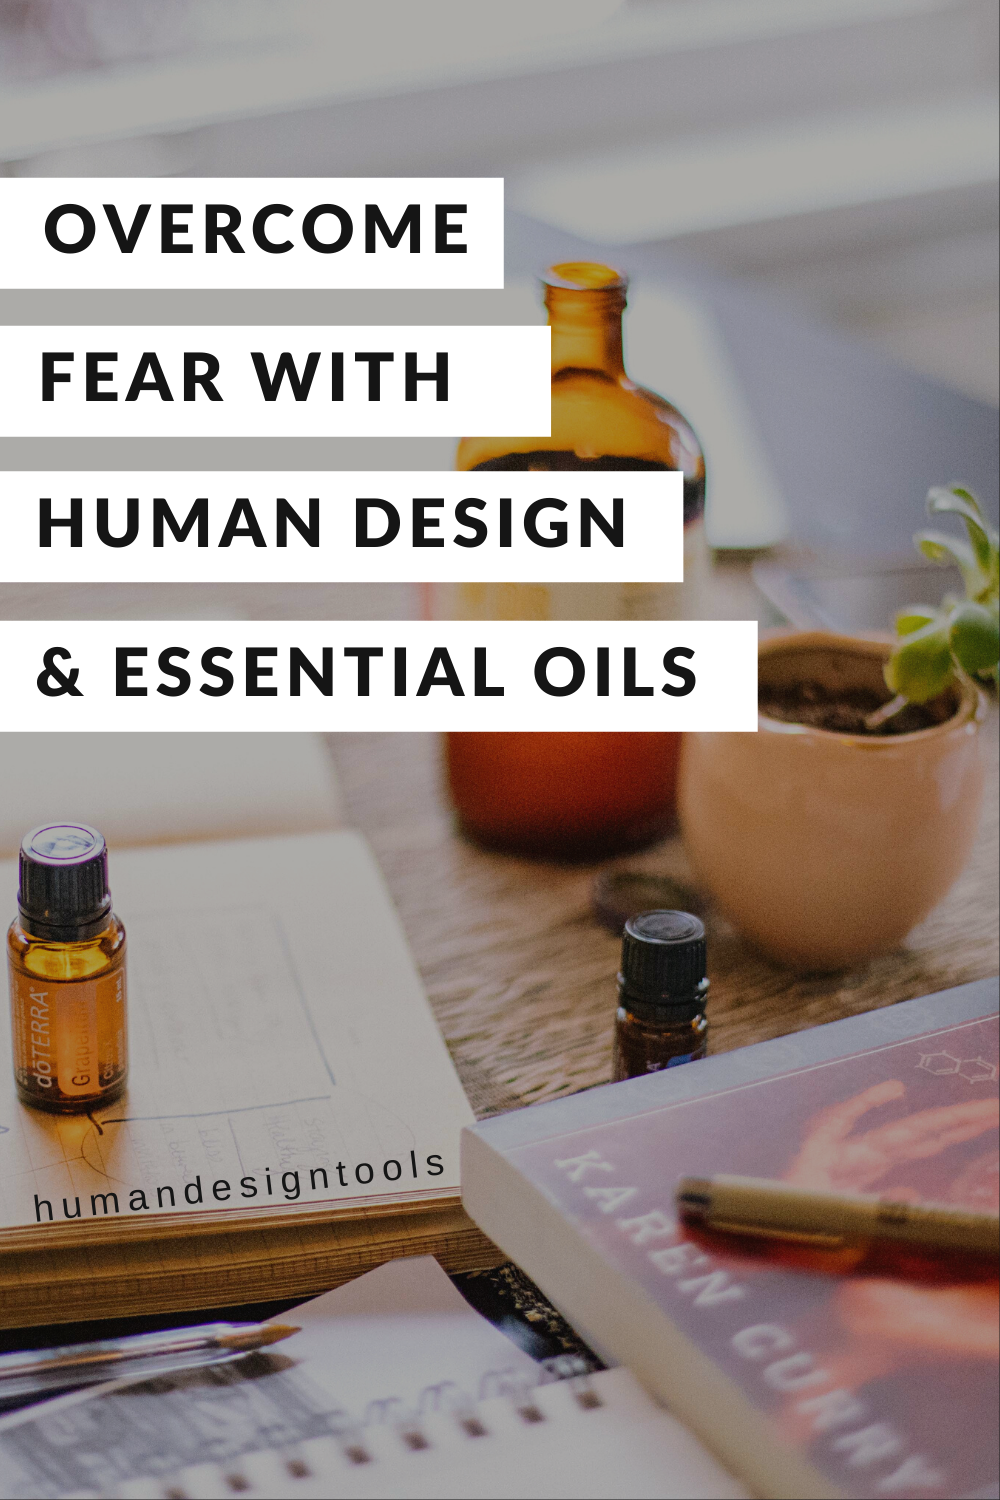 How to overcome fear with Human Design and essential oils